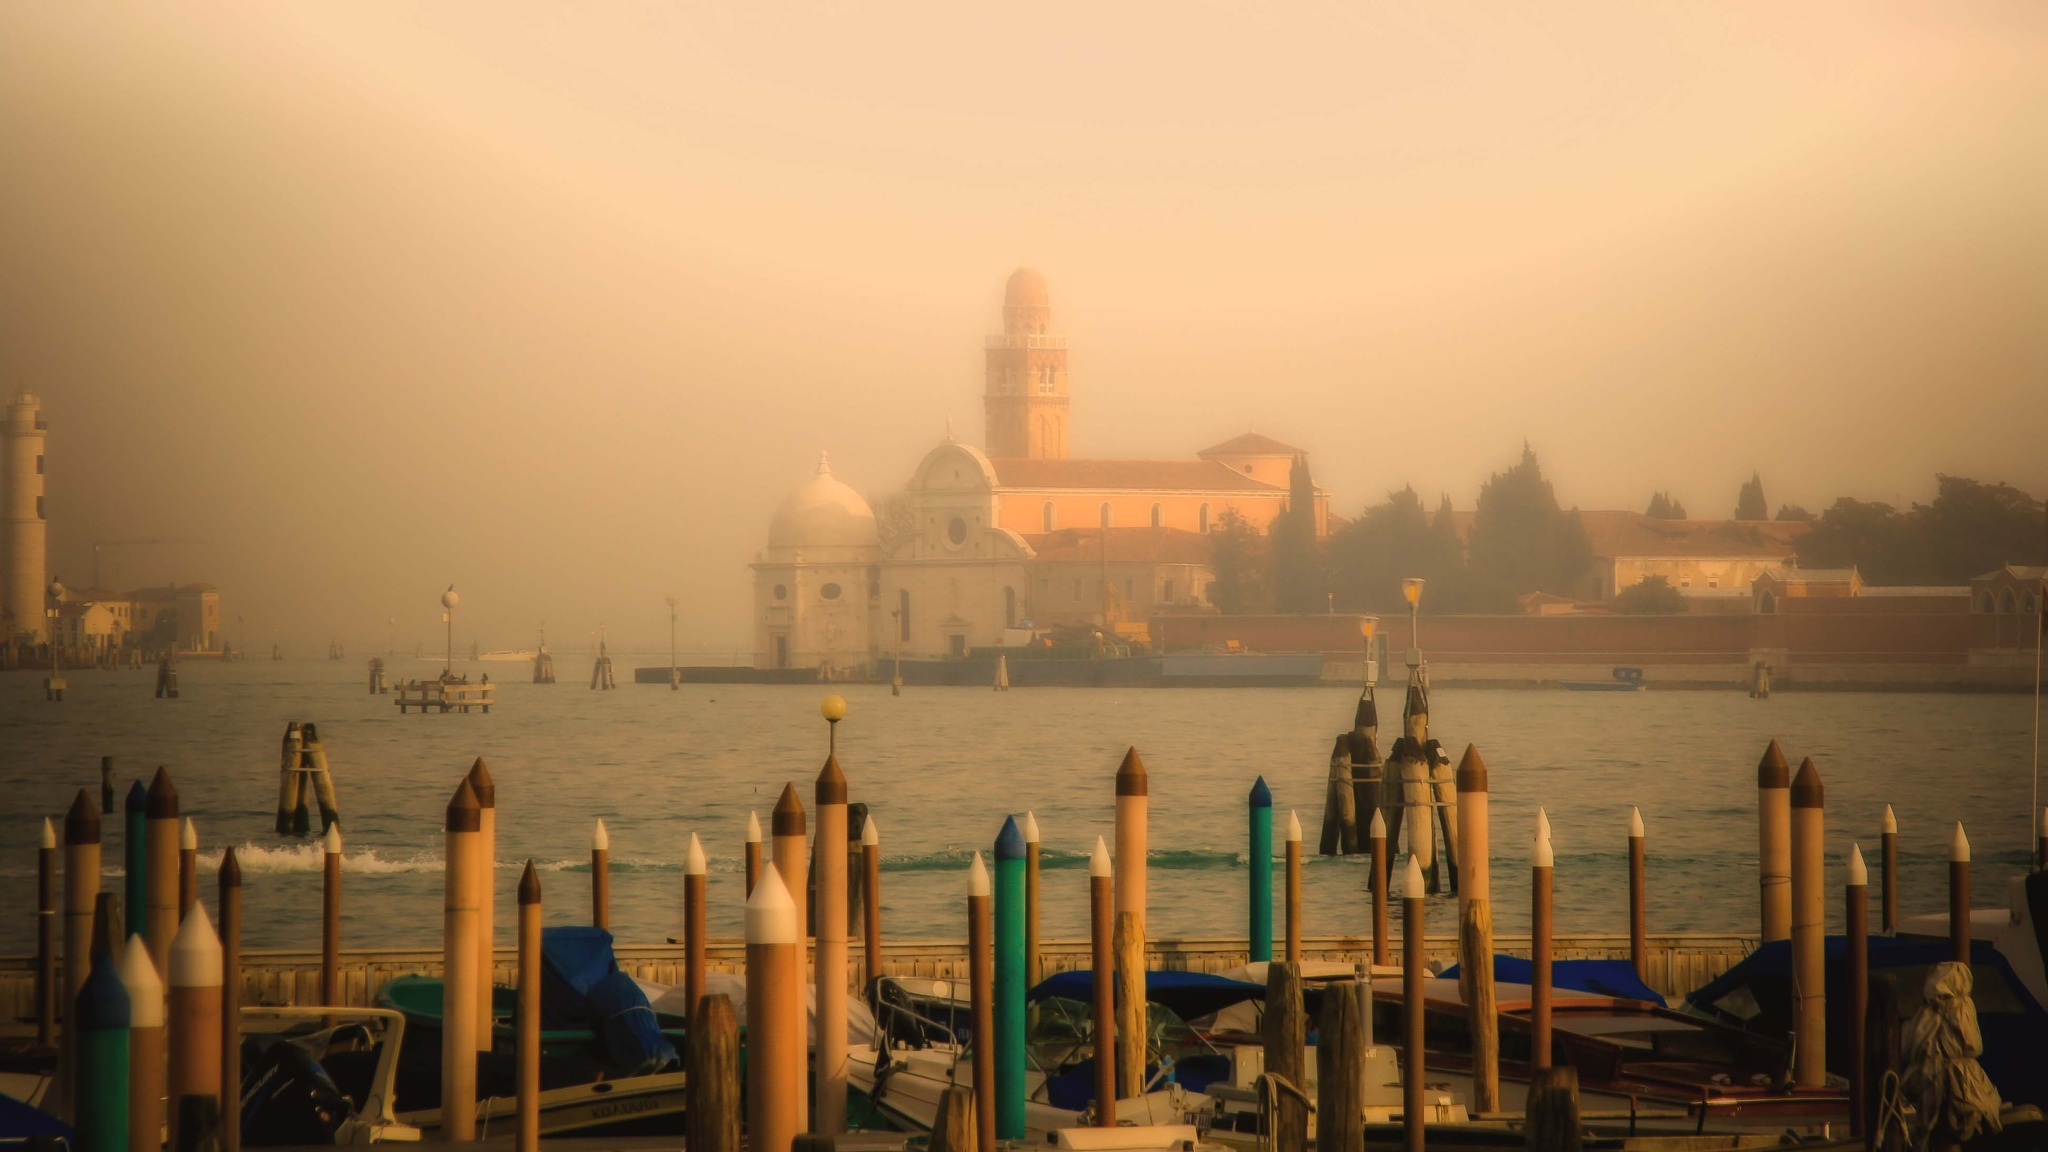 Venice in the mist. by billymcwilliams